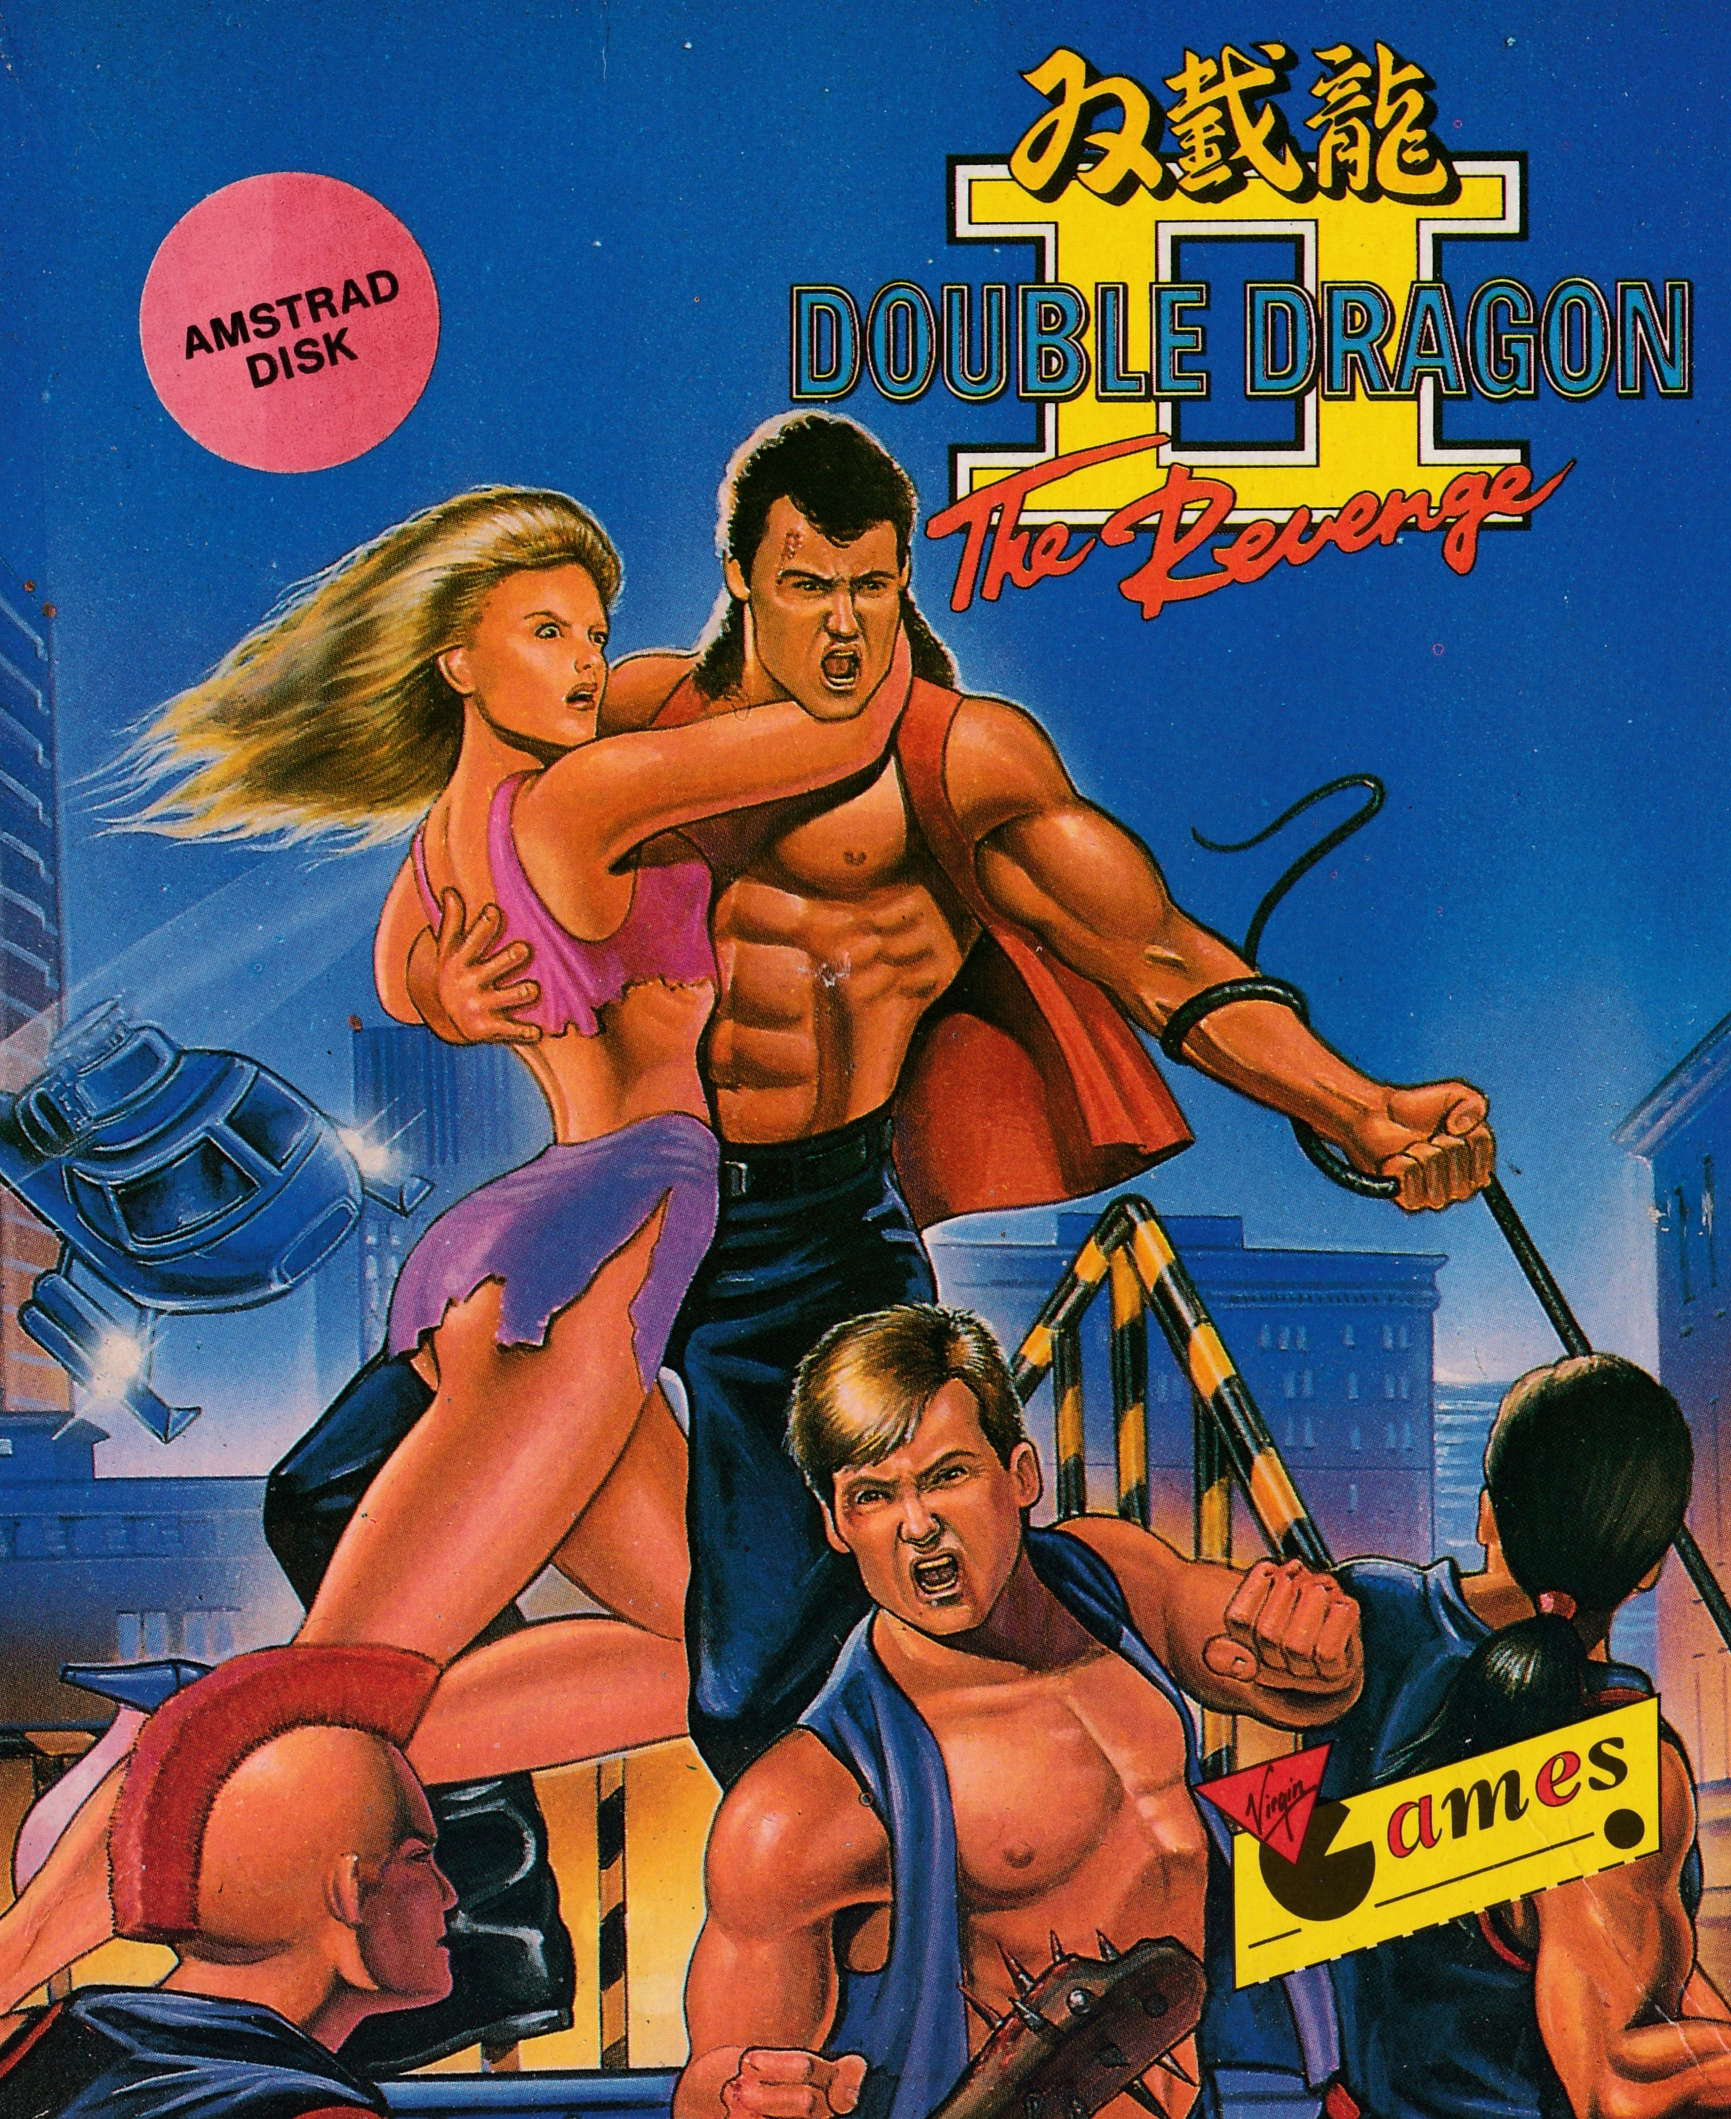 cover of the Amstrad CPC game Double Dragon II - The Revenge  by GameBase CPC